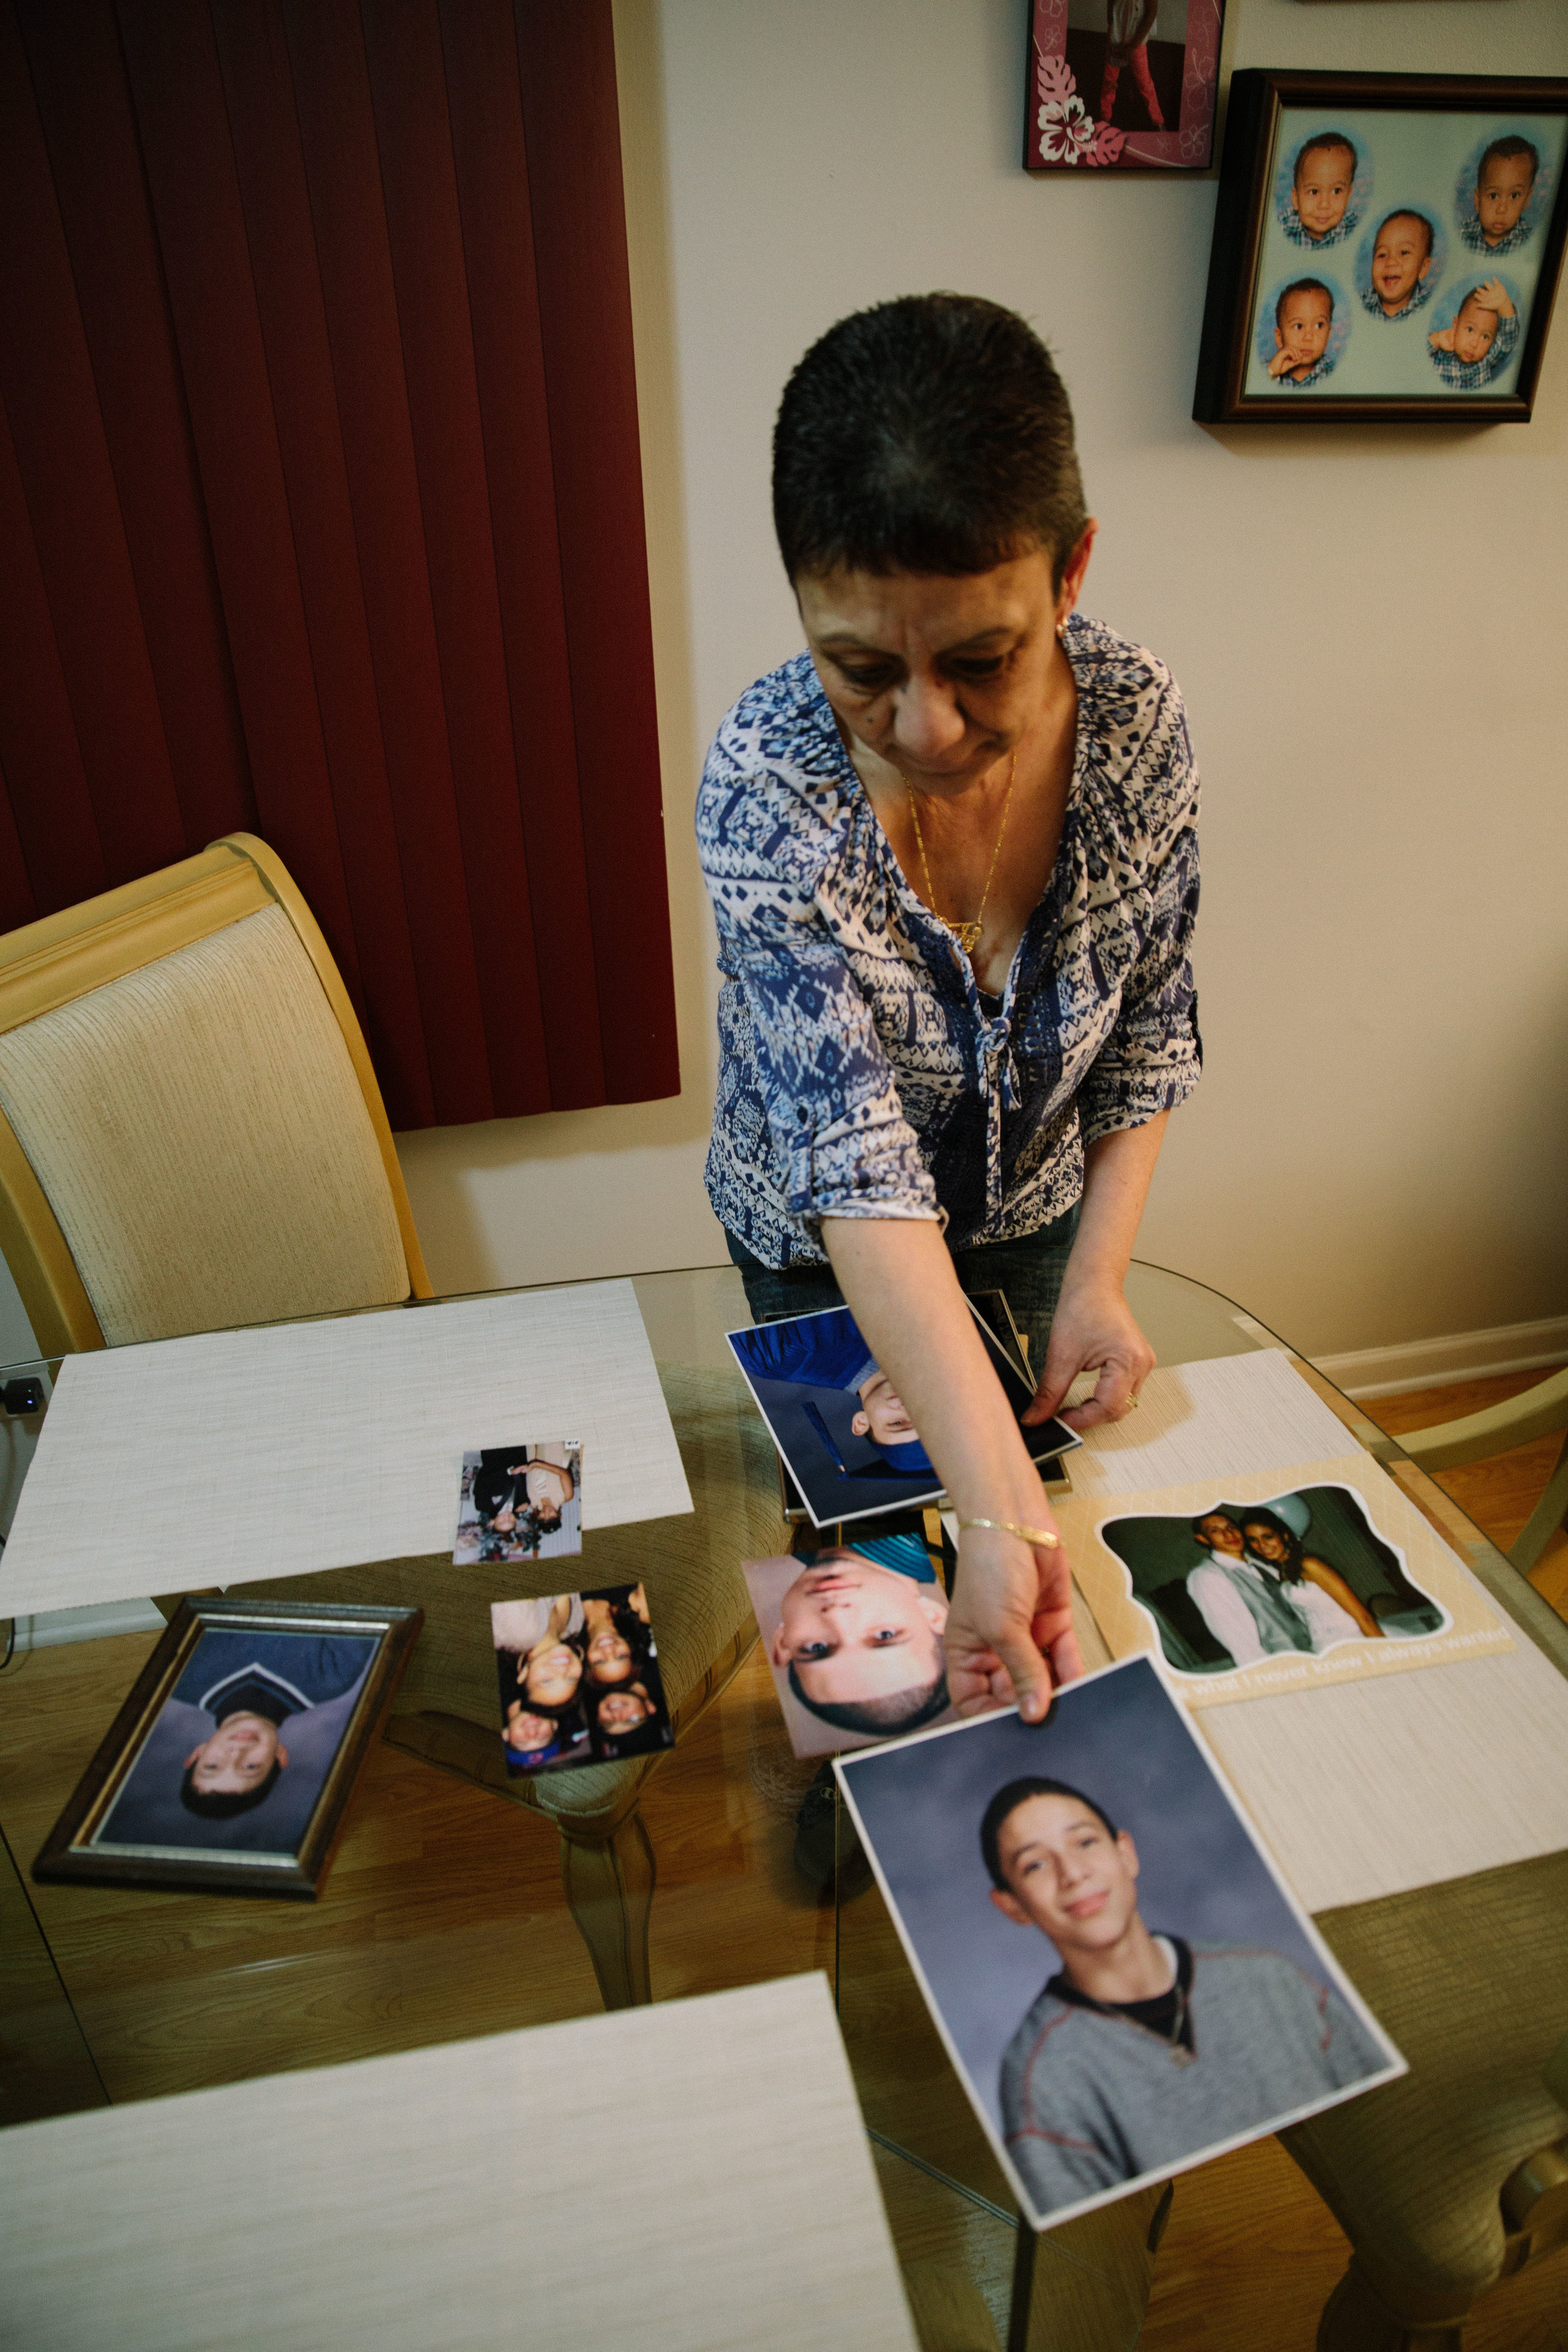 Elizabeth Ramirez lays out photos of her son, Dee Jay Rodriguez, on the dining room table. In October 2011 Dee Jay was shot and killed in his apartment in Chicago's Bellmont-Cragin neighborhood. In the aftermath of her son's murder, Elizabeth helped found Parents for Peace and Justice, a support and advocacy organization that comes alongside families who have also lost children to gun violence in Chicago. MCC partners with Parents for Peace and Justice to help support their important work.